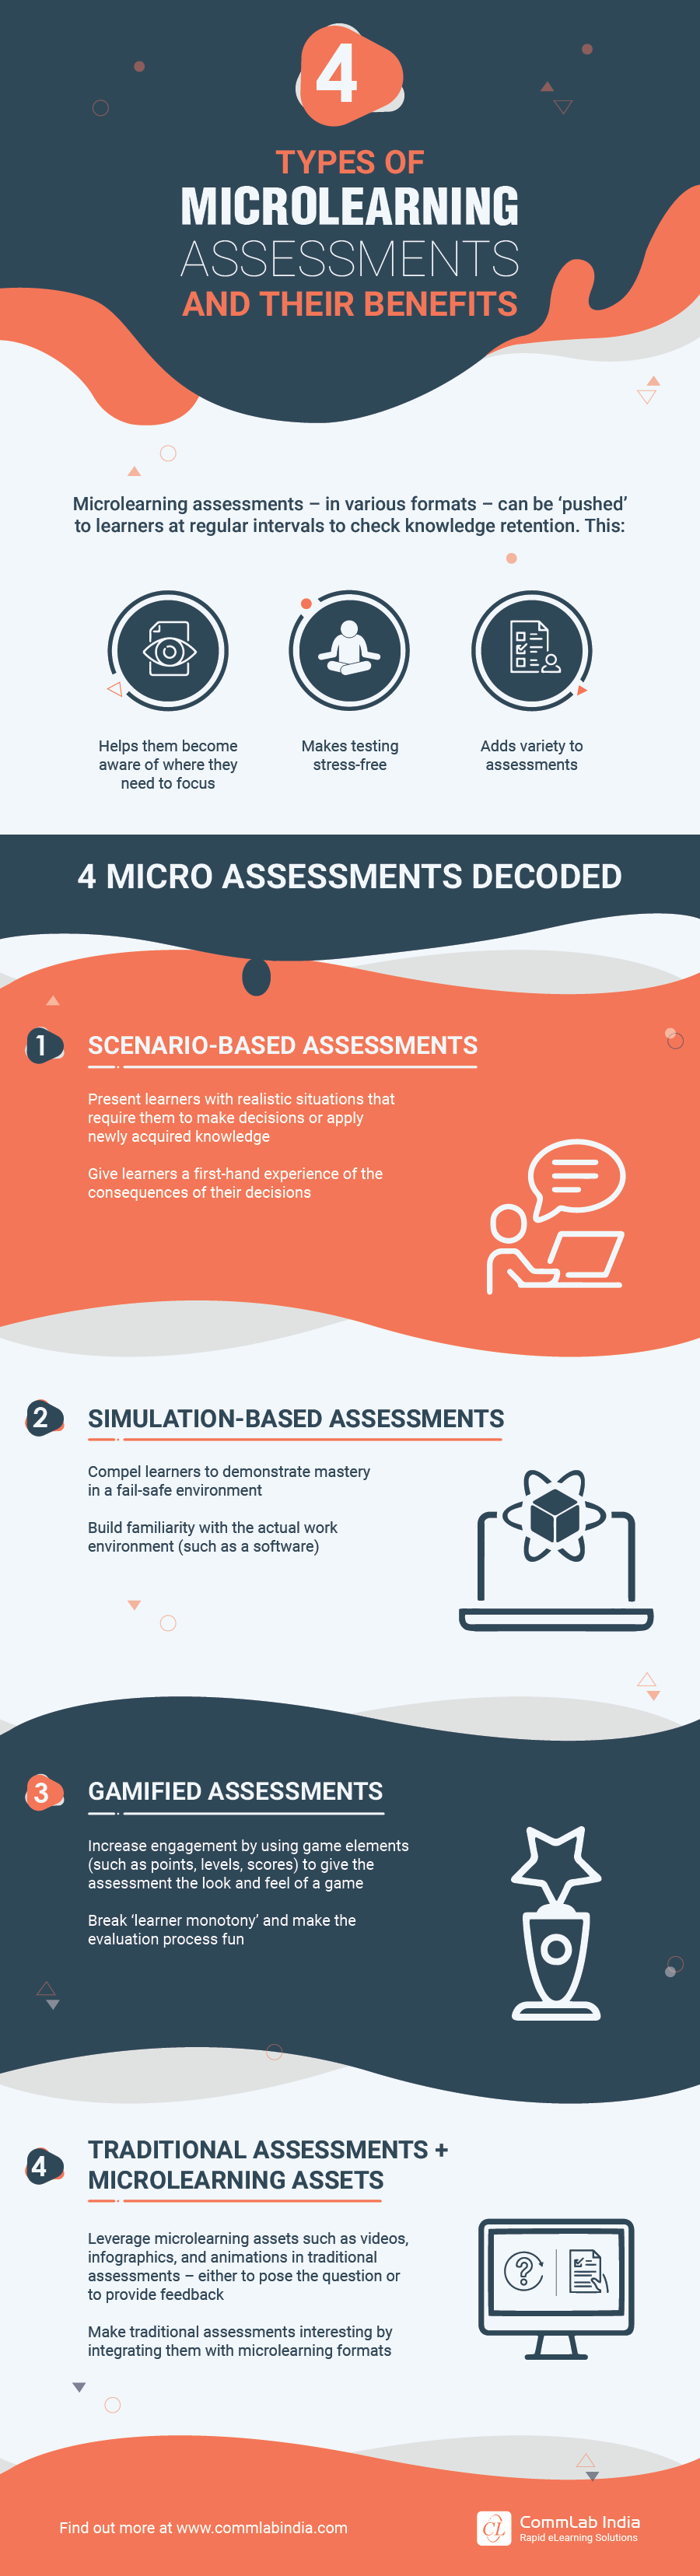 4 Types of Microlearning Assessments and their Benefits [Infographic]